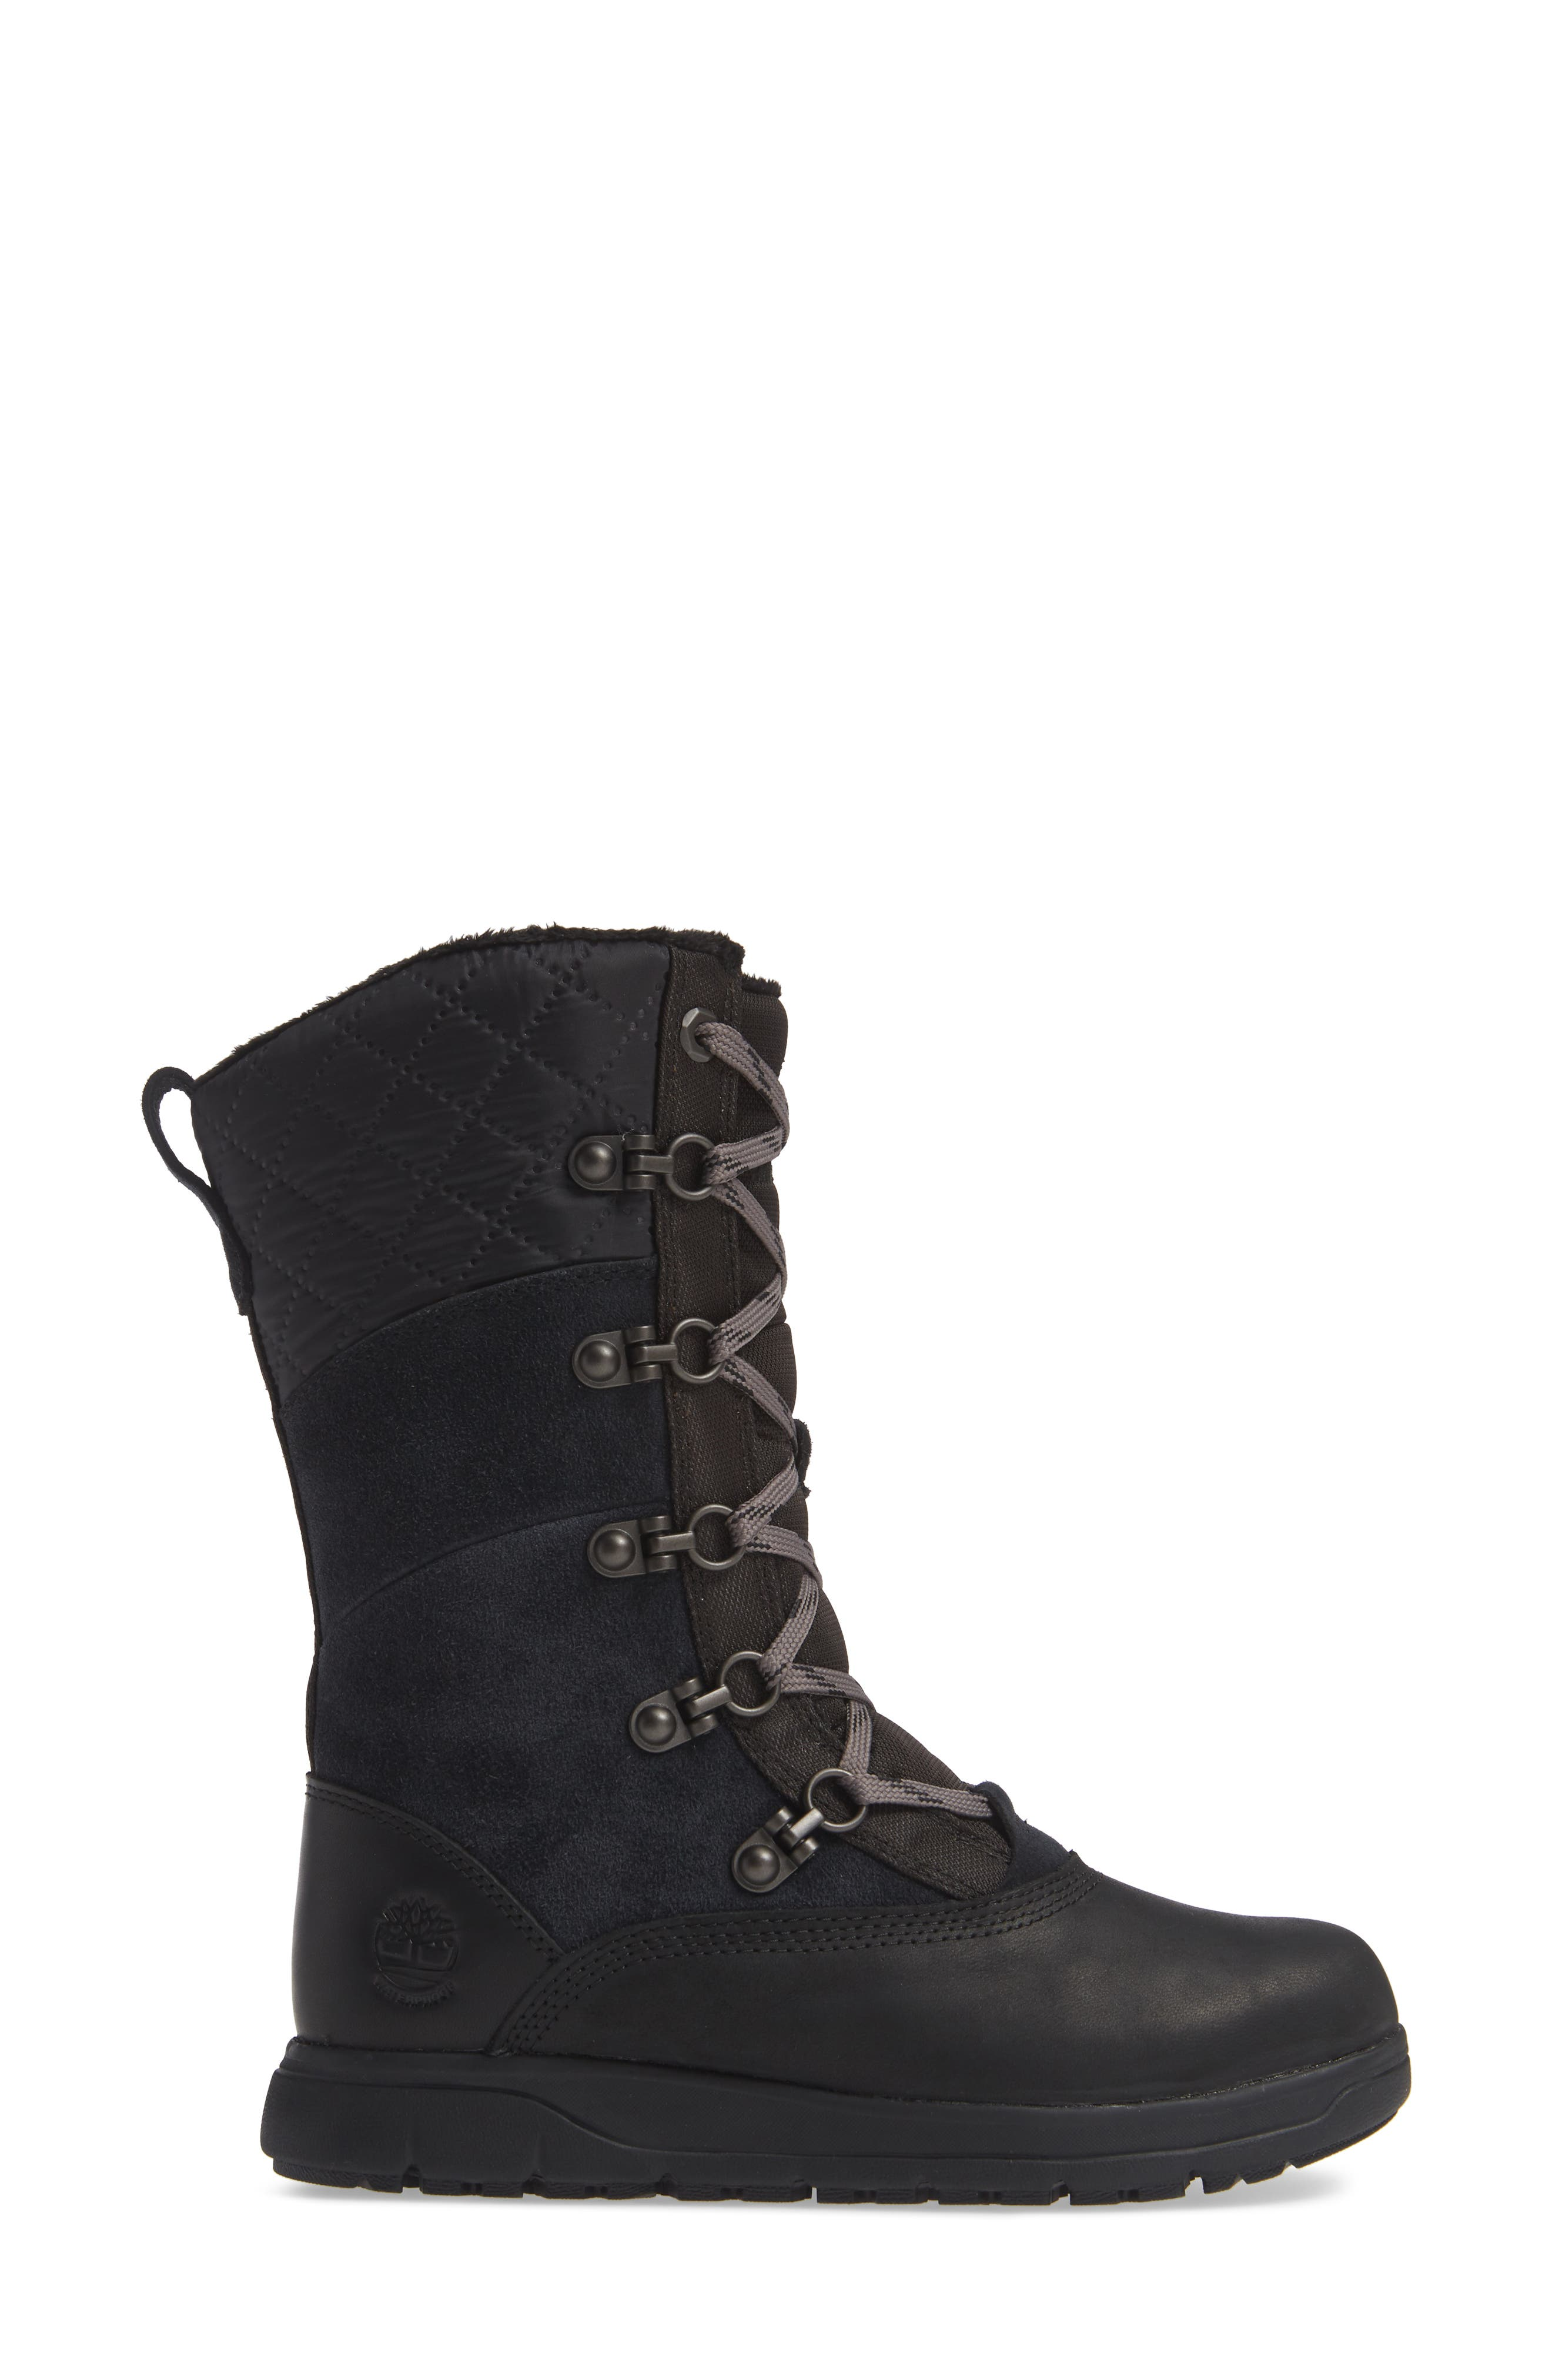 Haven Point Waterproof Boot,                             Alternate thumbnail 3, color,                             001